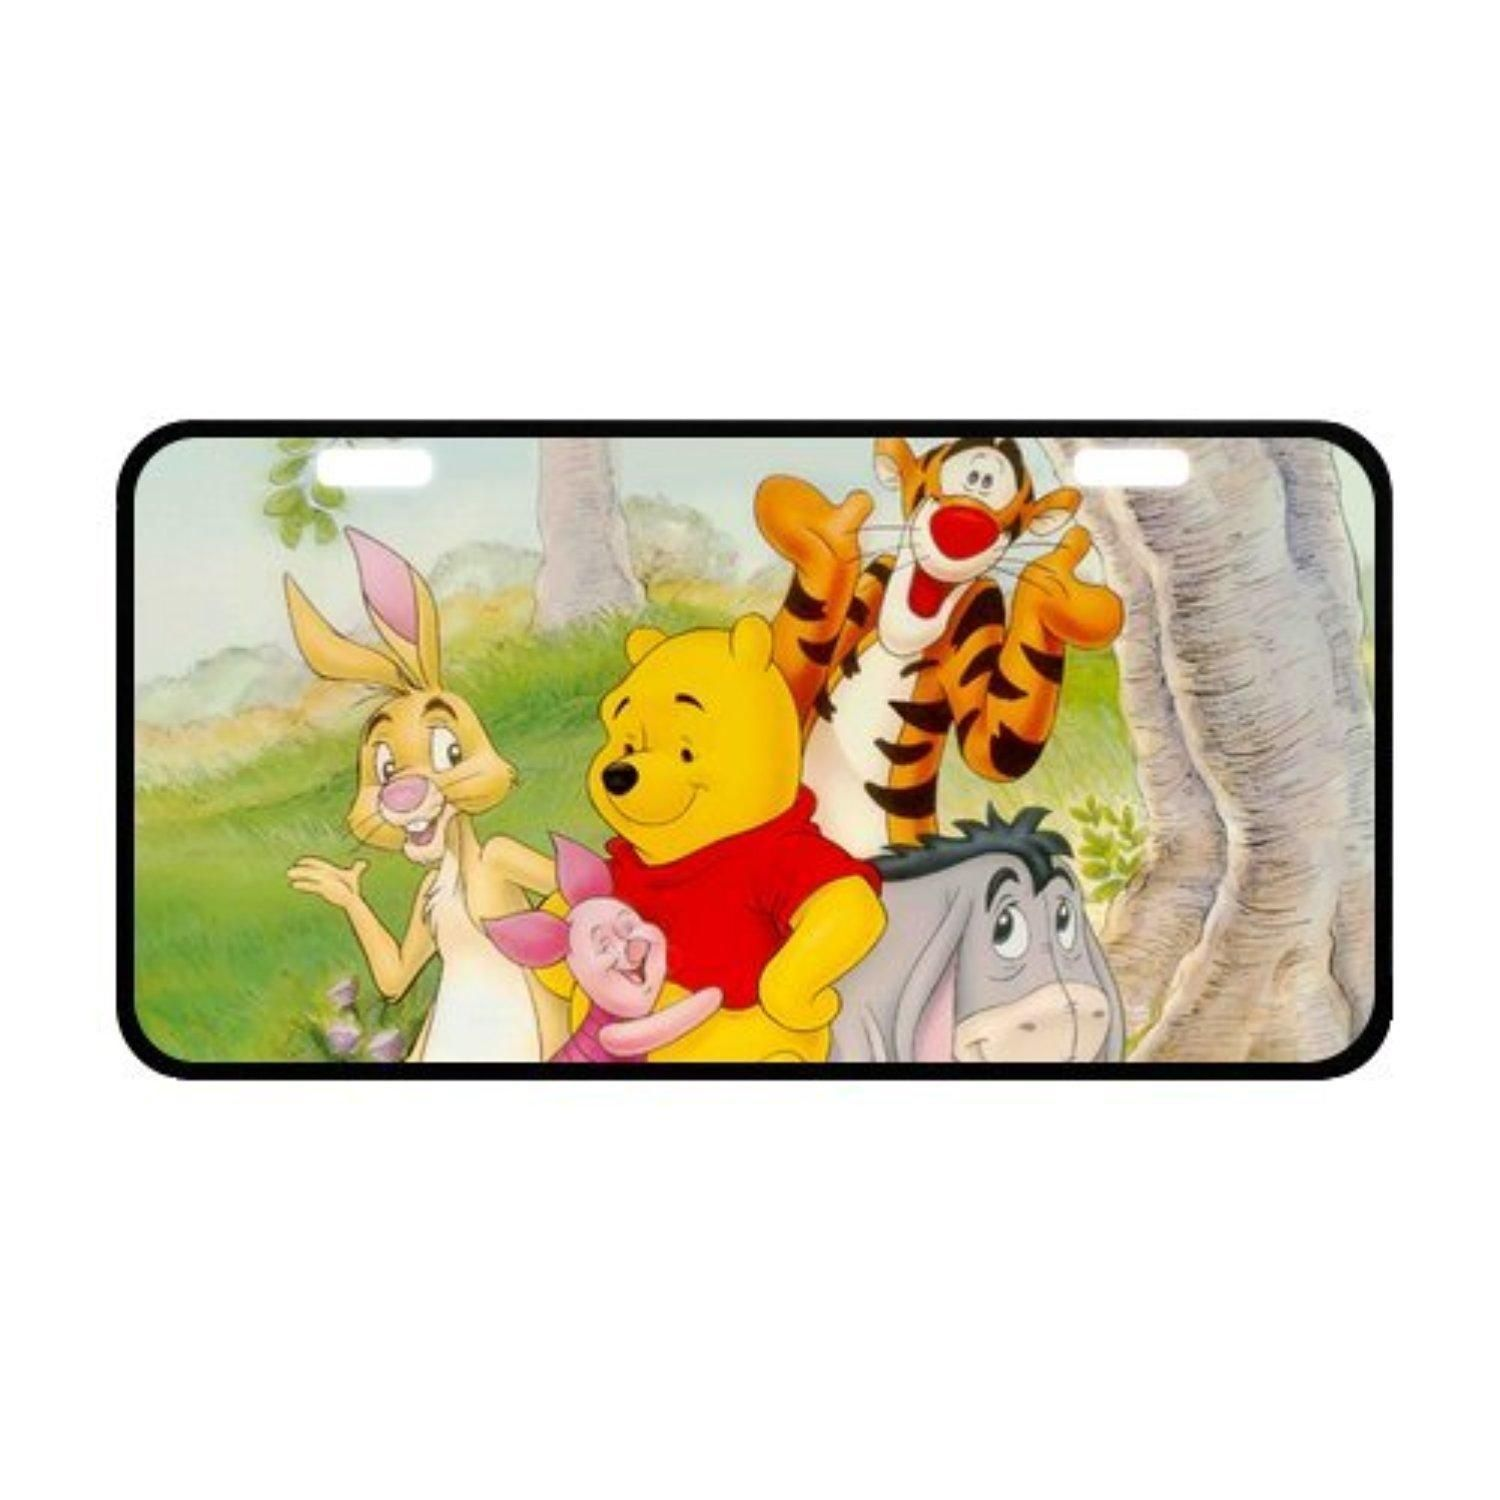 LP-Blinking Many Adventures Of Winnie The Pooh Custom License Plate Holder Durable Car Tag 11.8 X 6.1 Inches … | Custom license plate. Plate ...